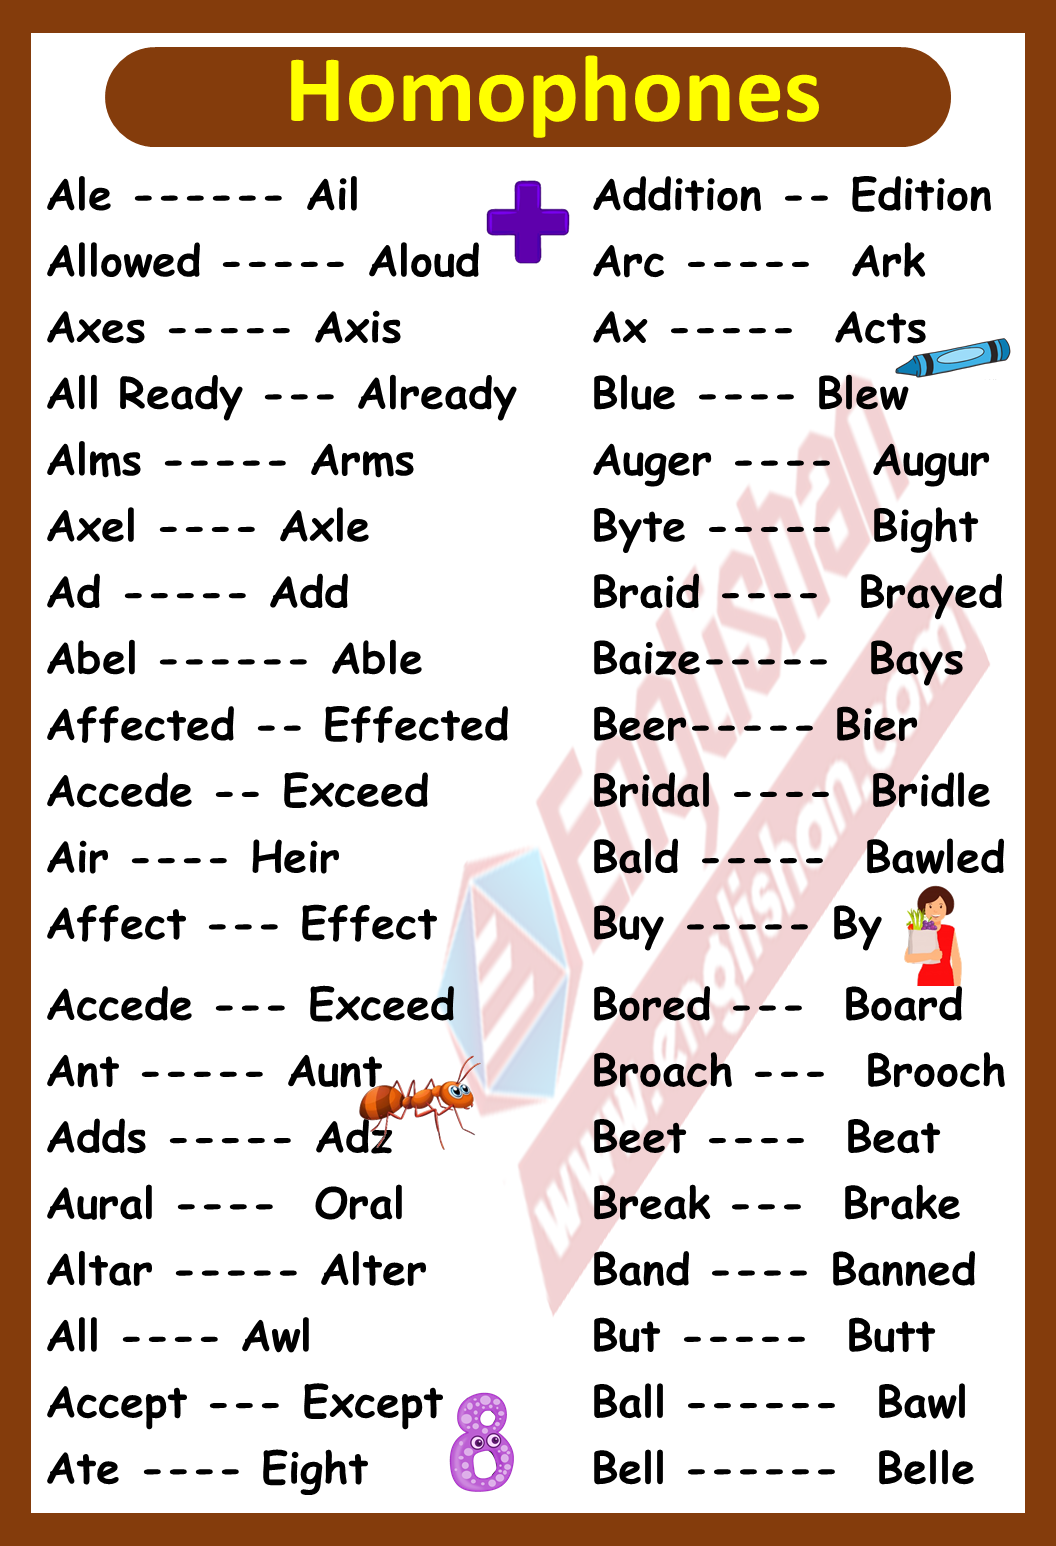 300 Homophones Words List With Examples Pdf Homophones Words Homophones Word List [ 1546 x 1056 Pixel ]